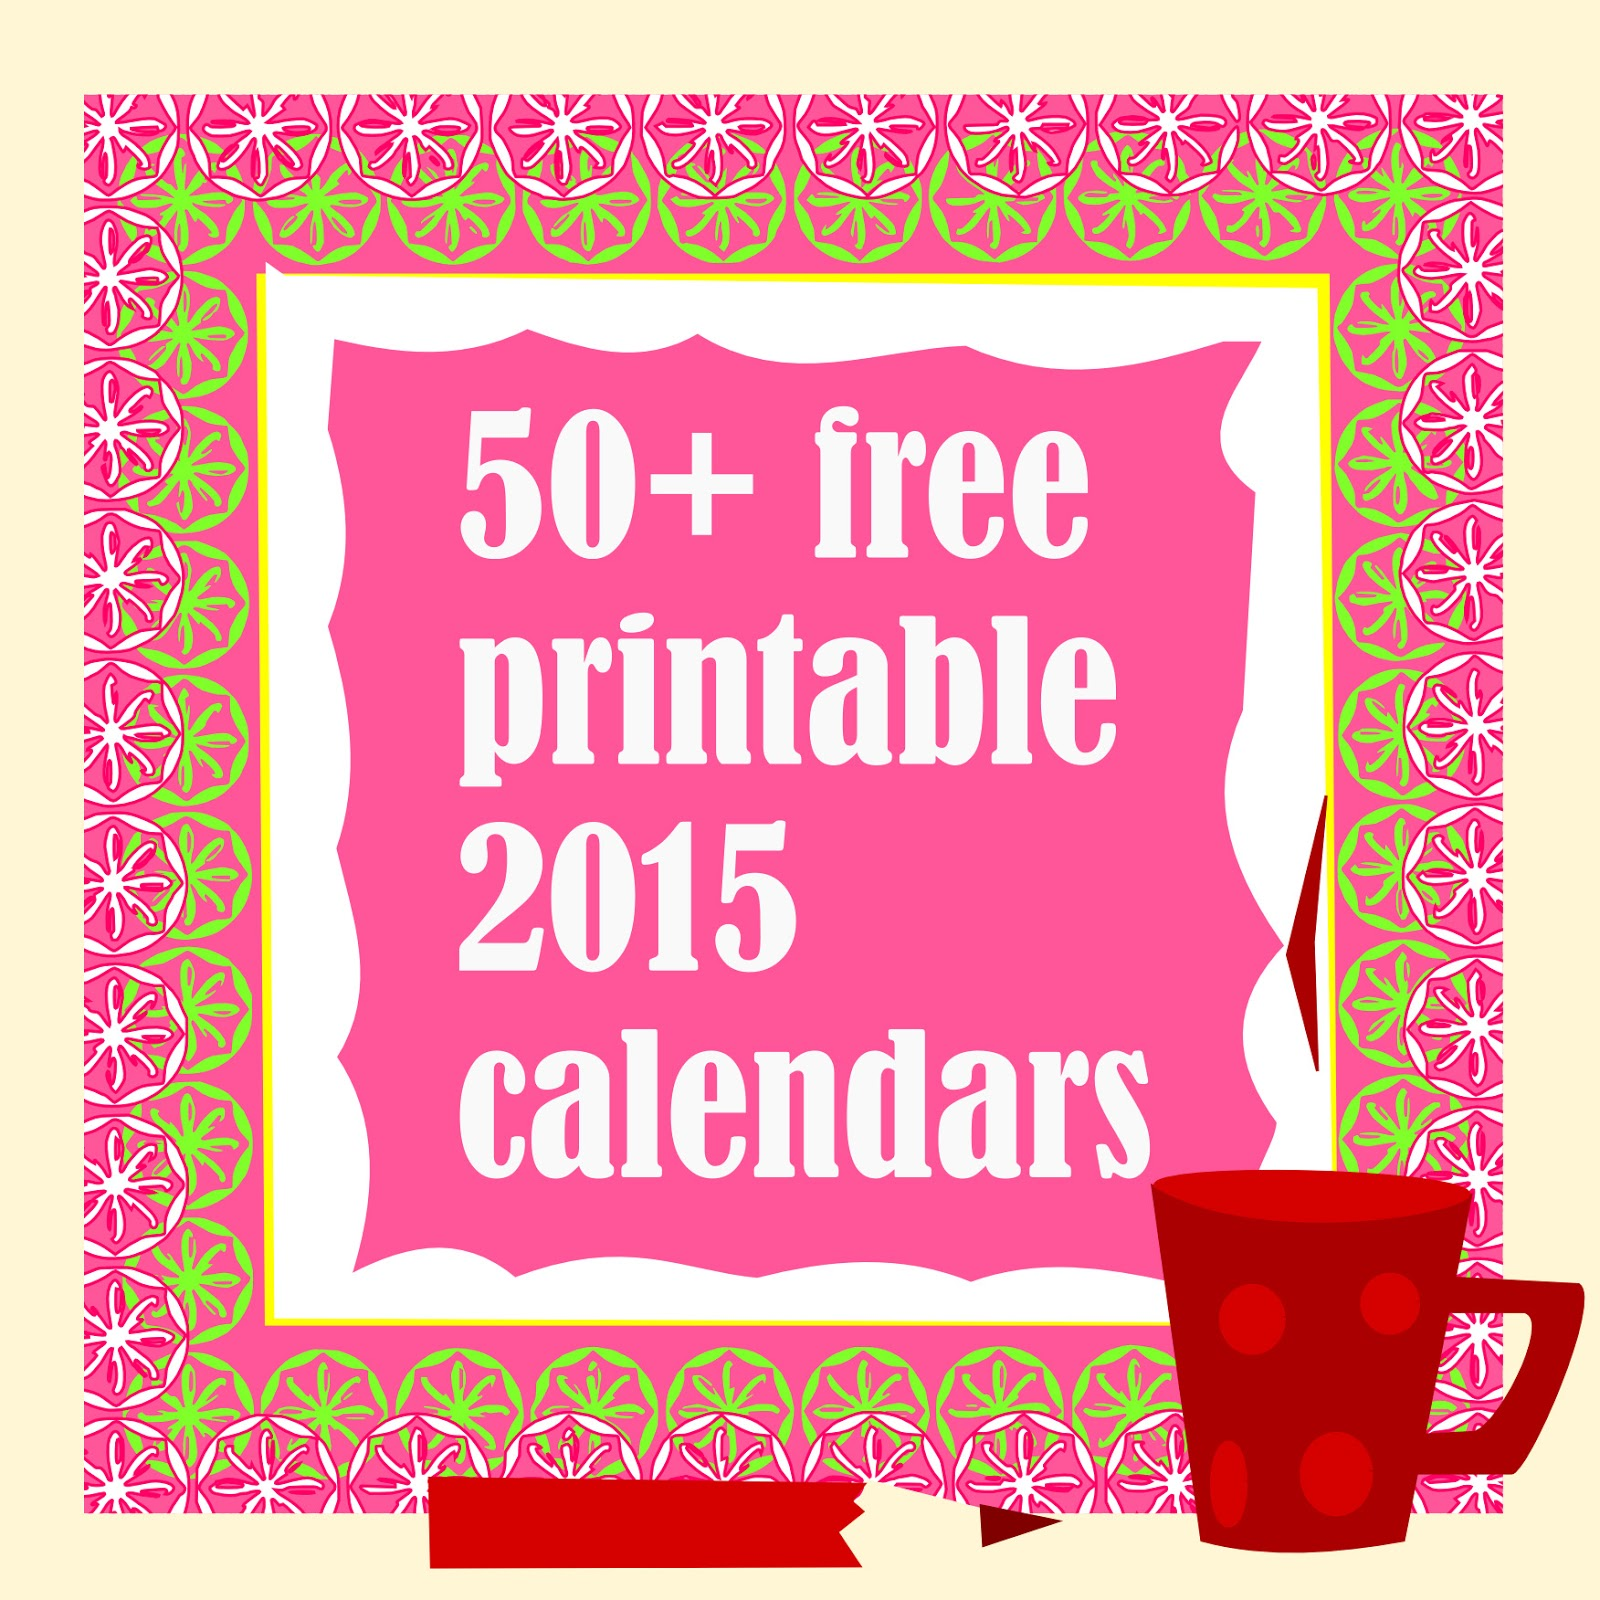 50+ free printable 2015 calendars - ausdruckbare Kalender - round-up ...